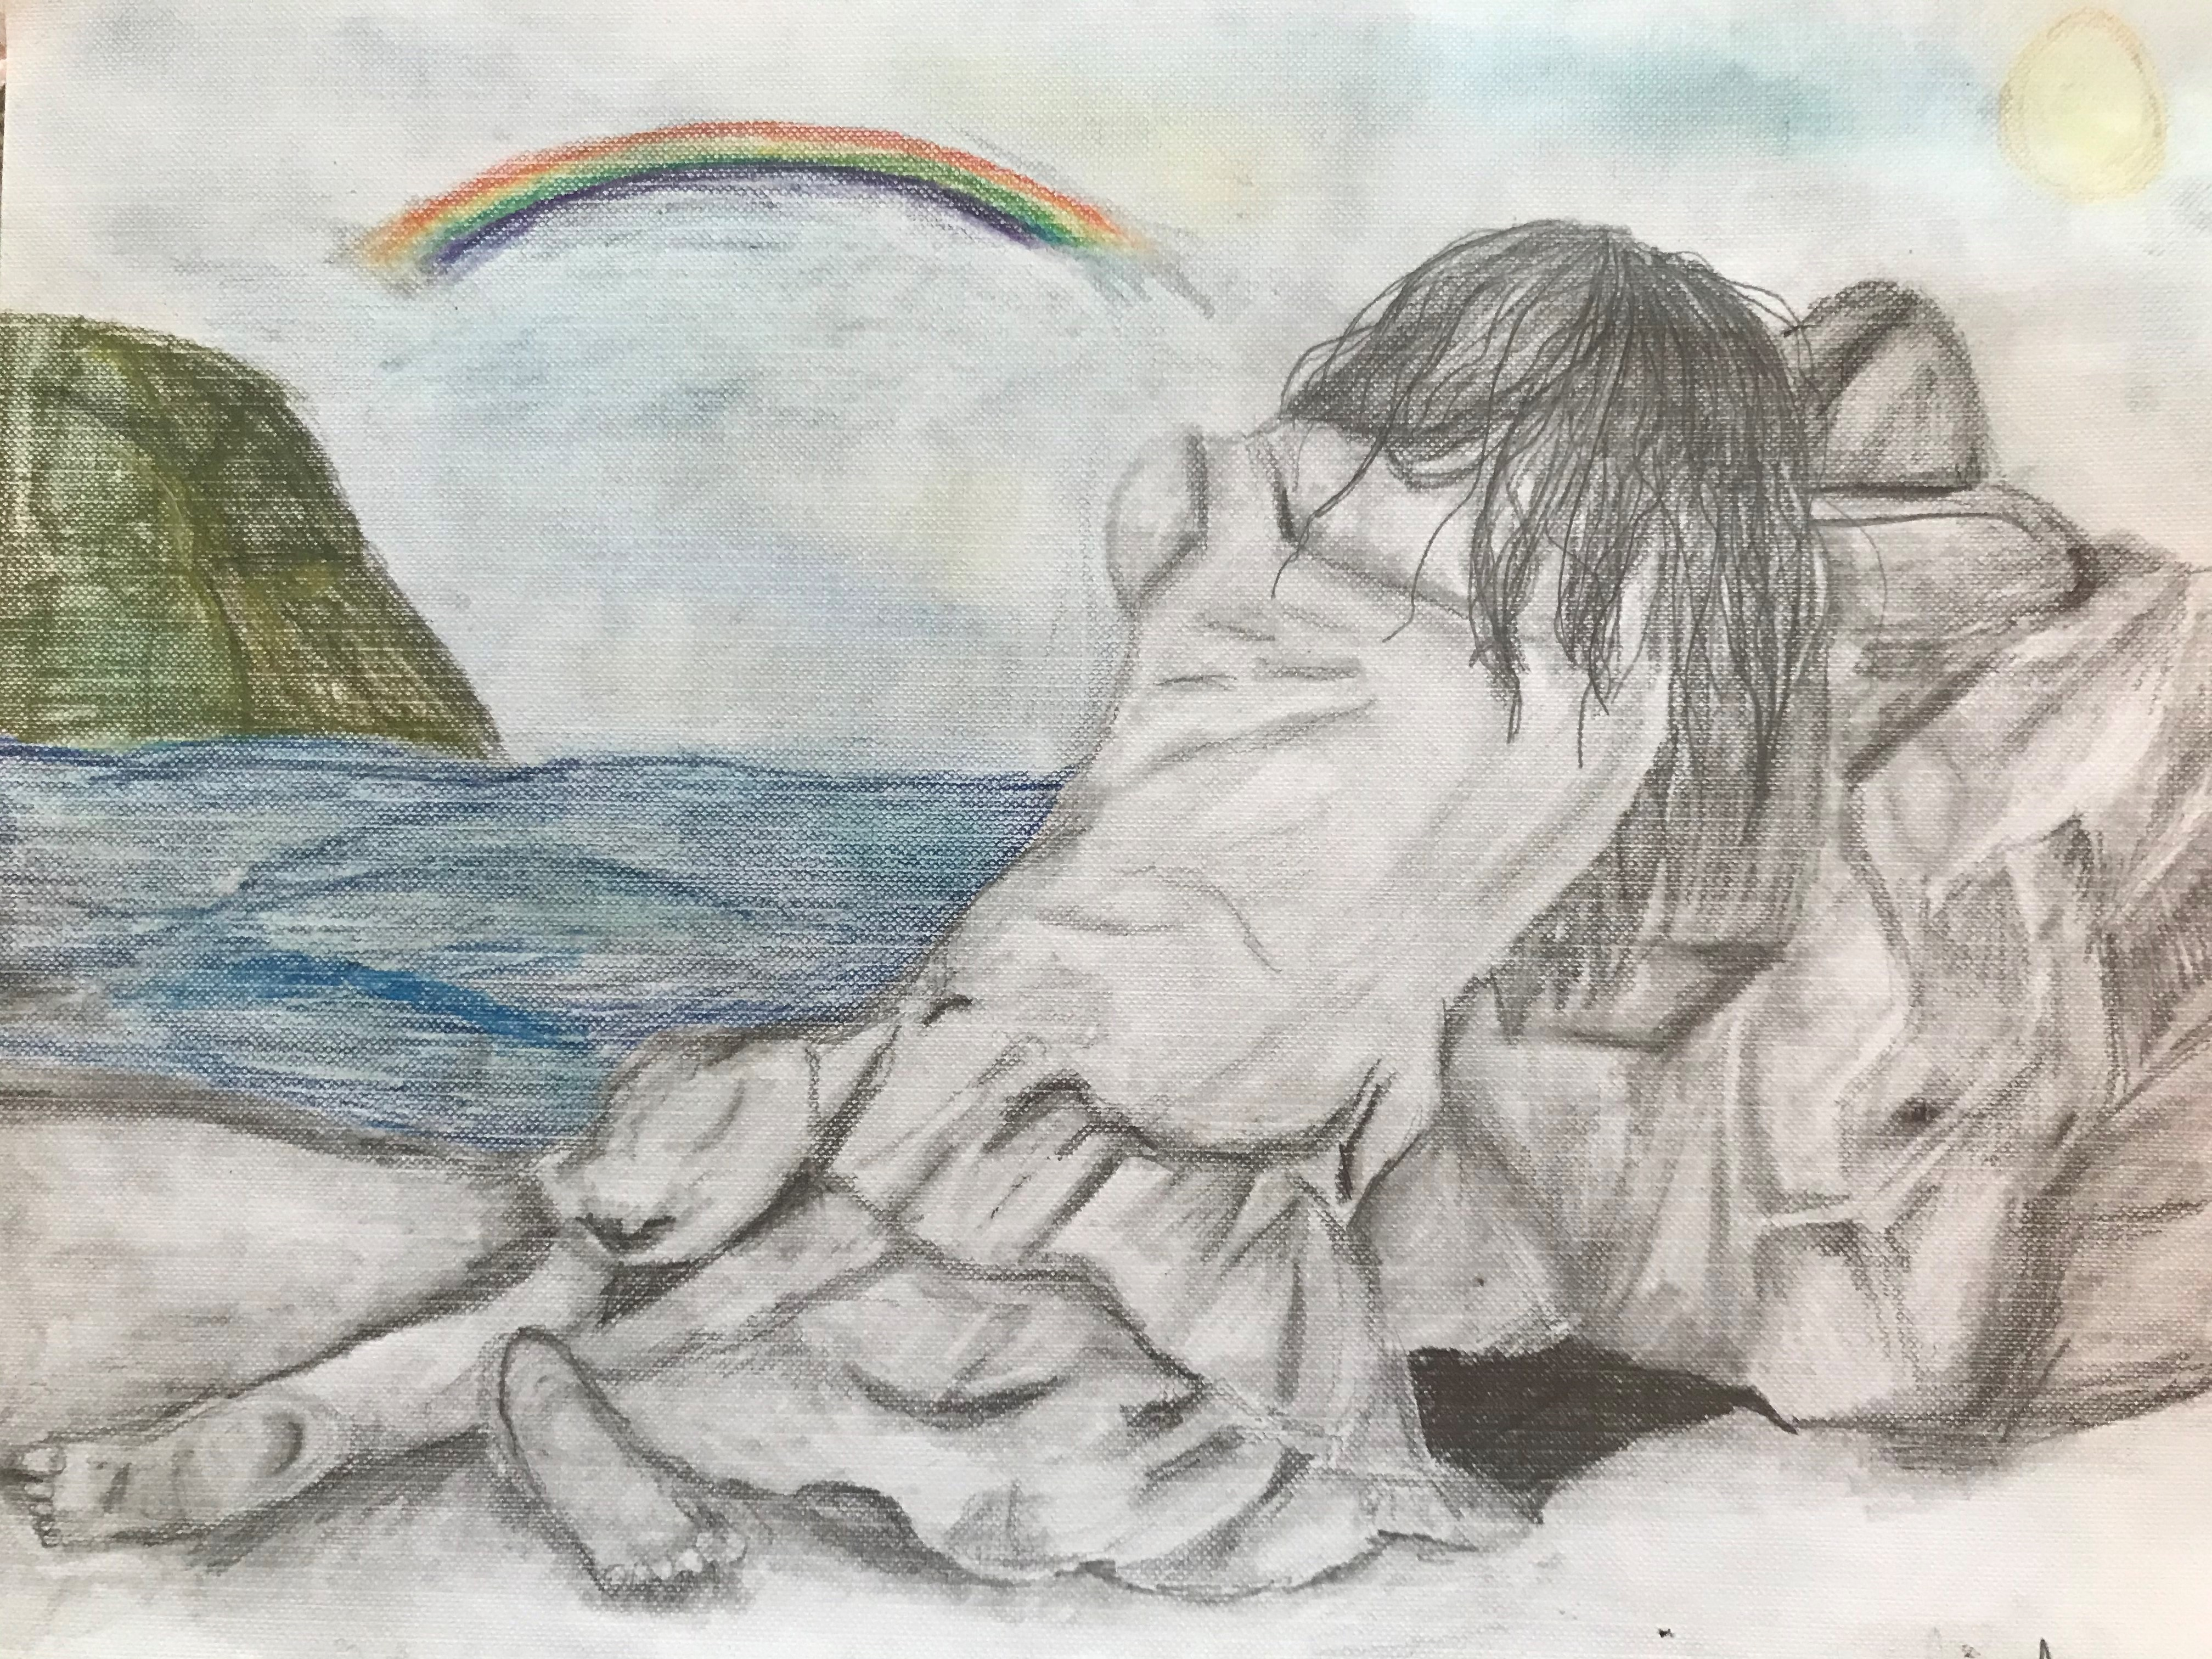 'They Enjoy My Rain', pencil and charcoal by Aury Ebner Winkler ($75) ⎼ 'After 7 months in quarantine, while struggling with mental health, it feels like my rain clouds are a blessing for those who are not isolated from society.'